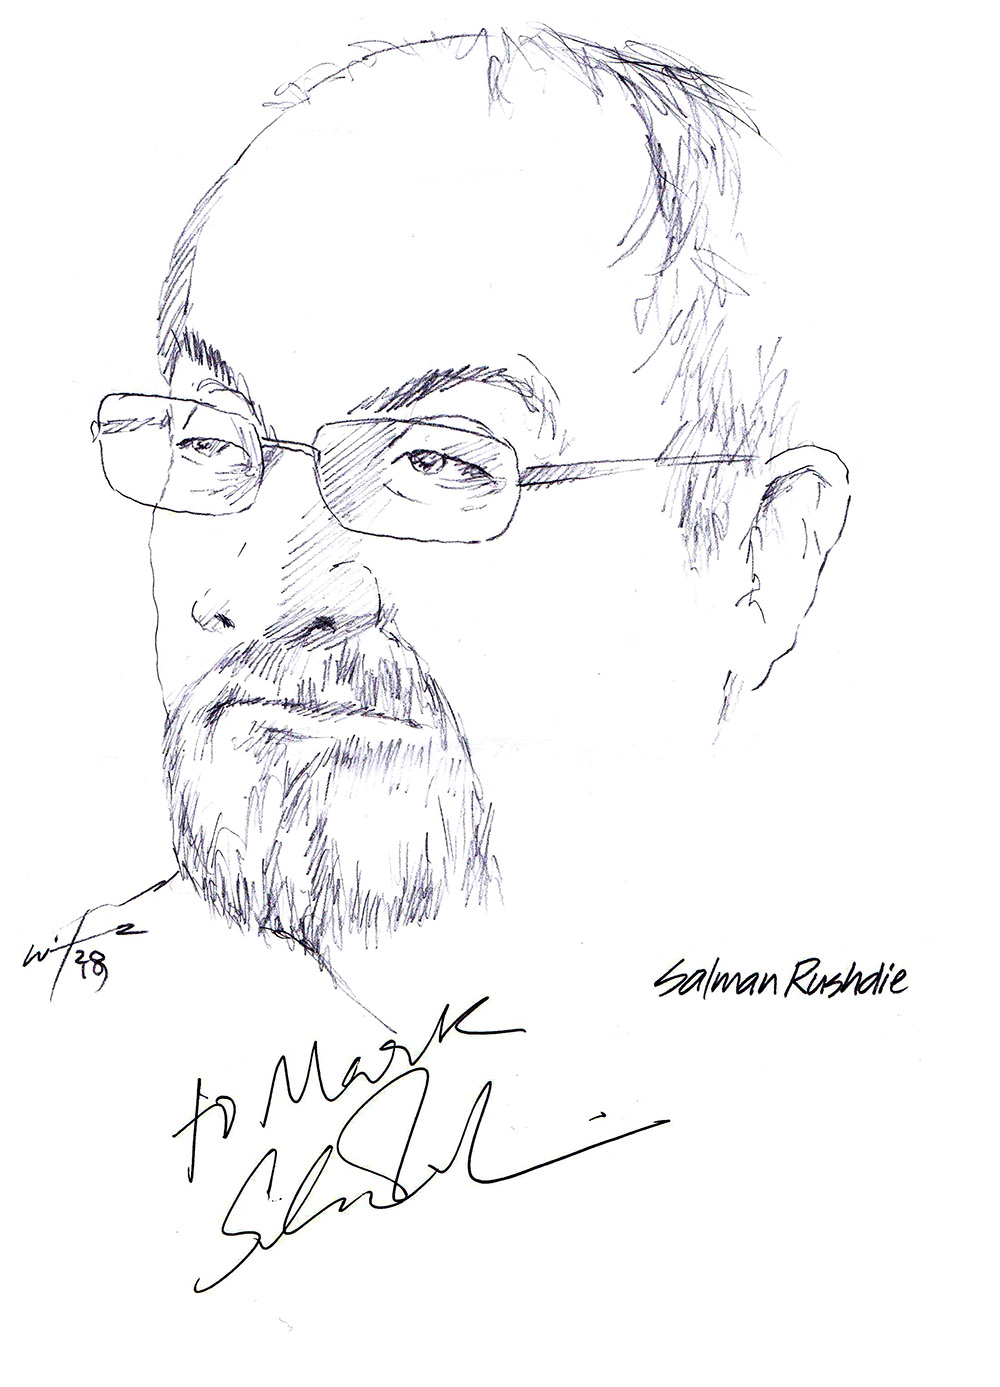 Autographed drawing of writer Salman Rushdie